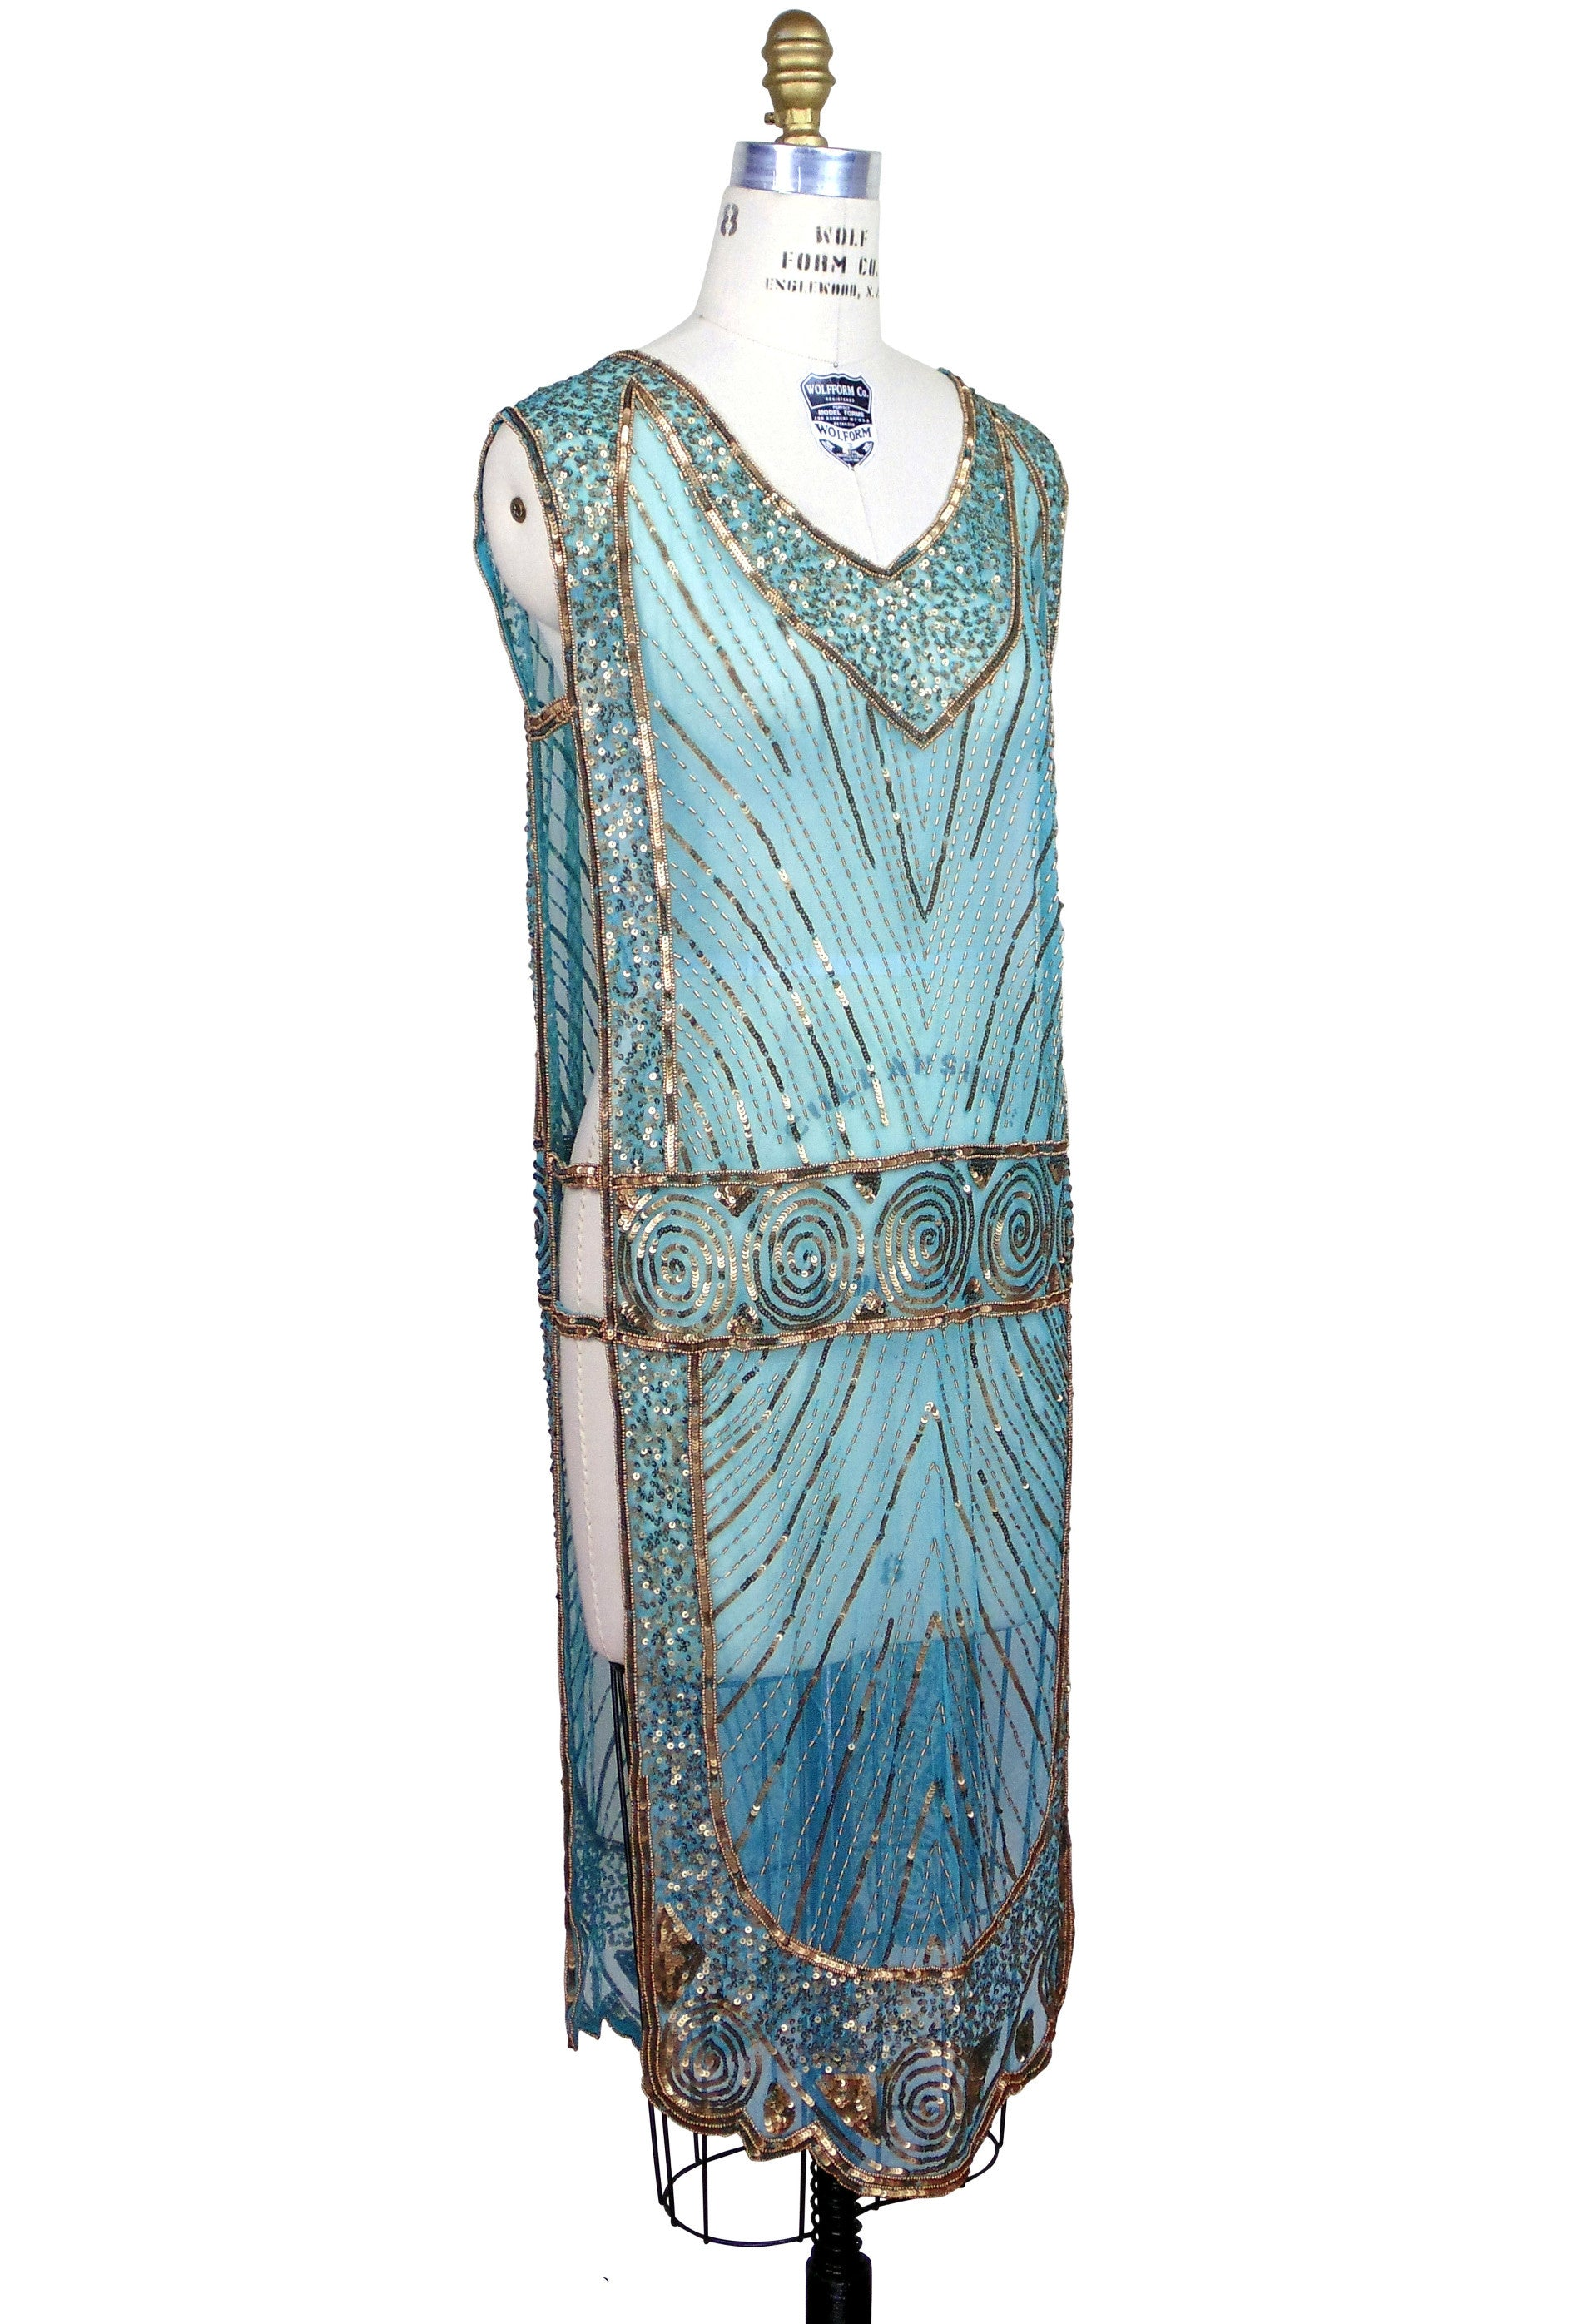 Egyptian Revival Collection | The Deco Haus